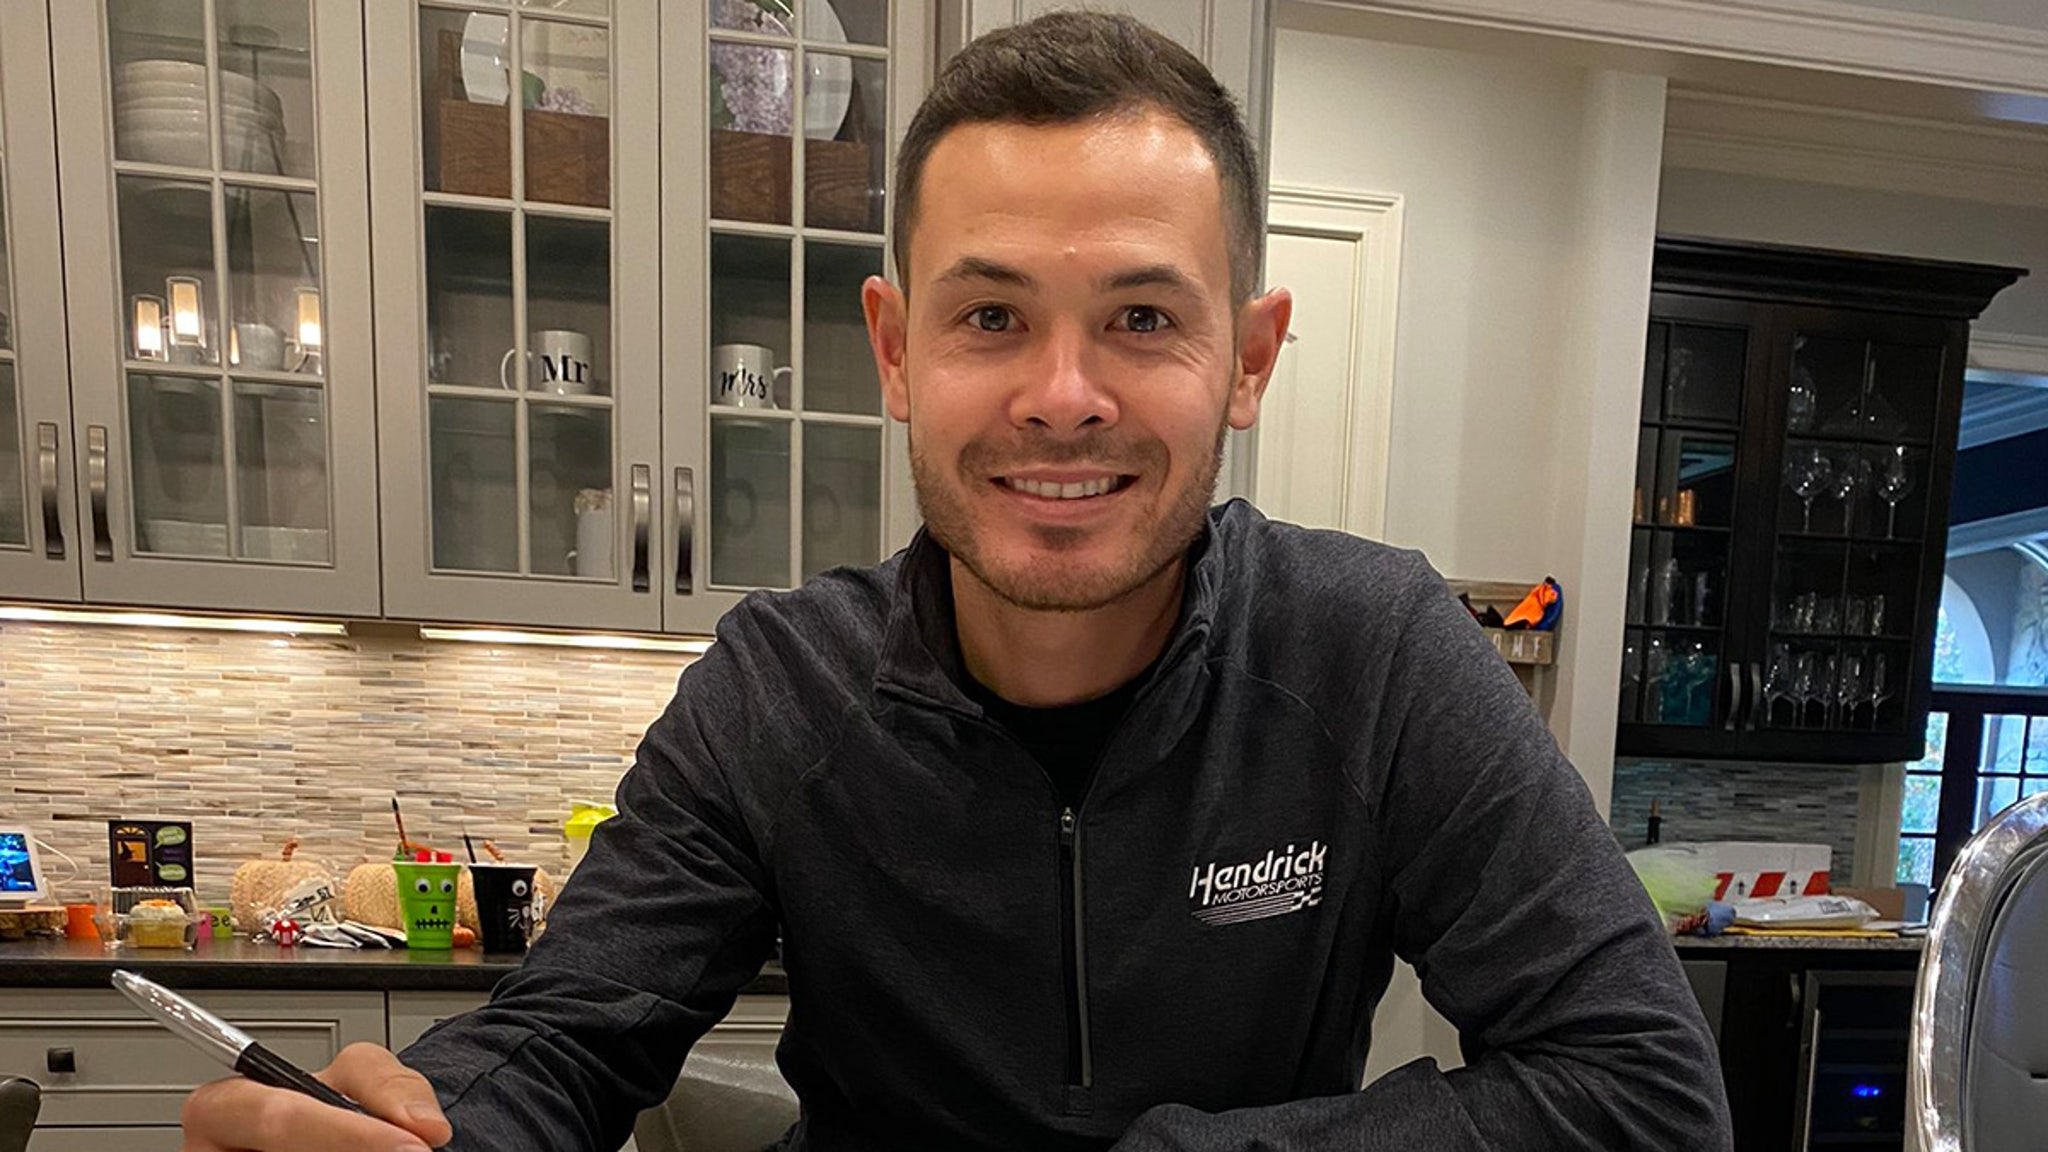 NASCAR's Kyle Larson Signs with New Racing Team After N-Word Incident